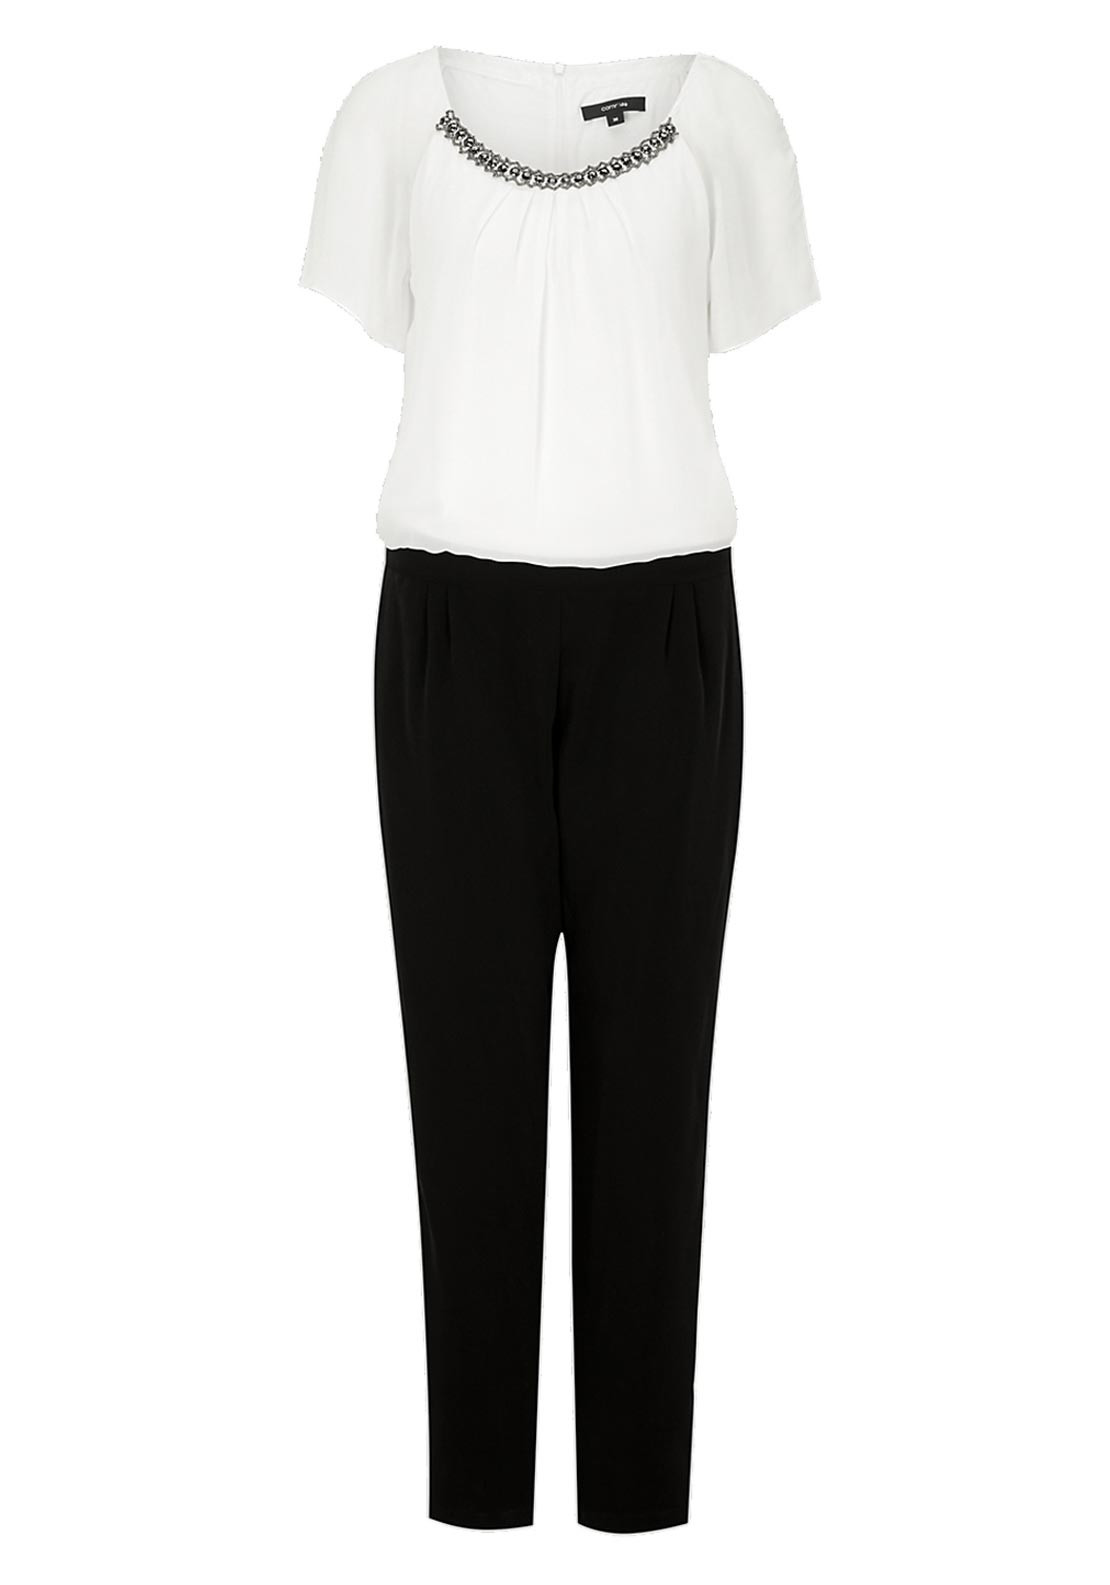 Comma Embellished Short Sleeve Jumpsuit, White and Black